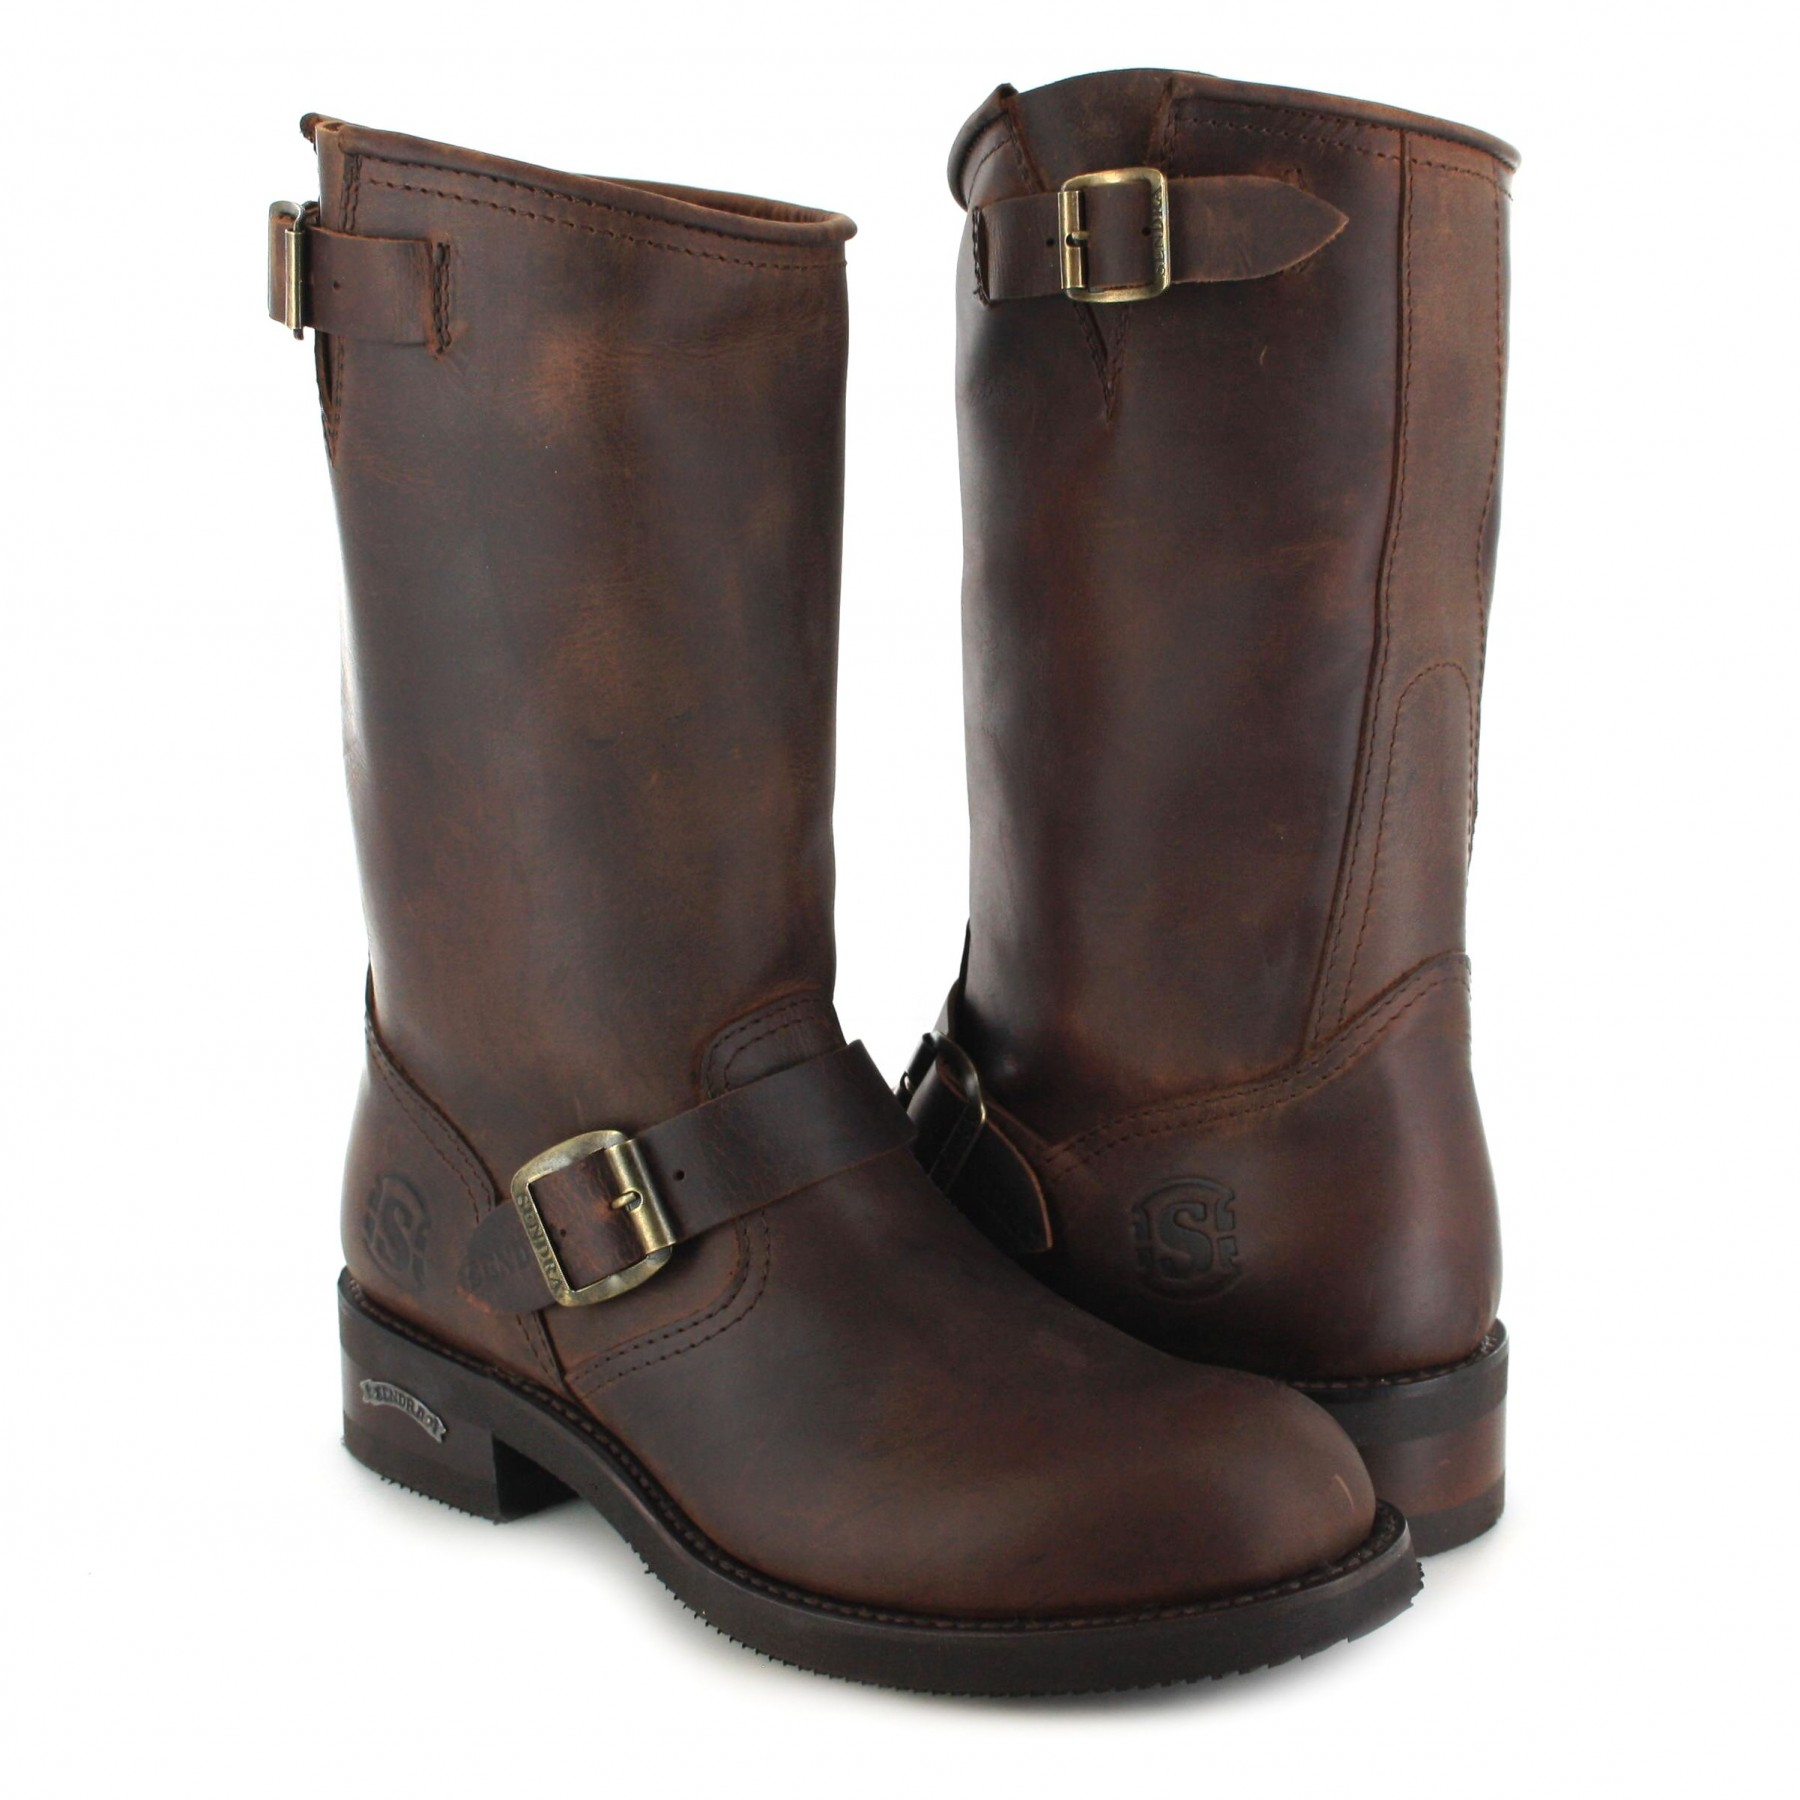 ... sendra boots 2944 sprinter engineer boot with no steel toecap- brown - rquxaid